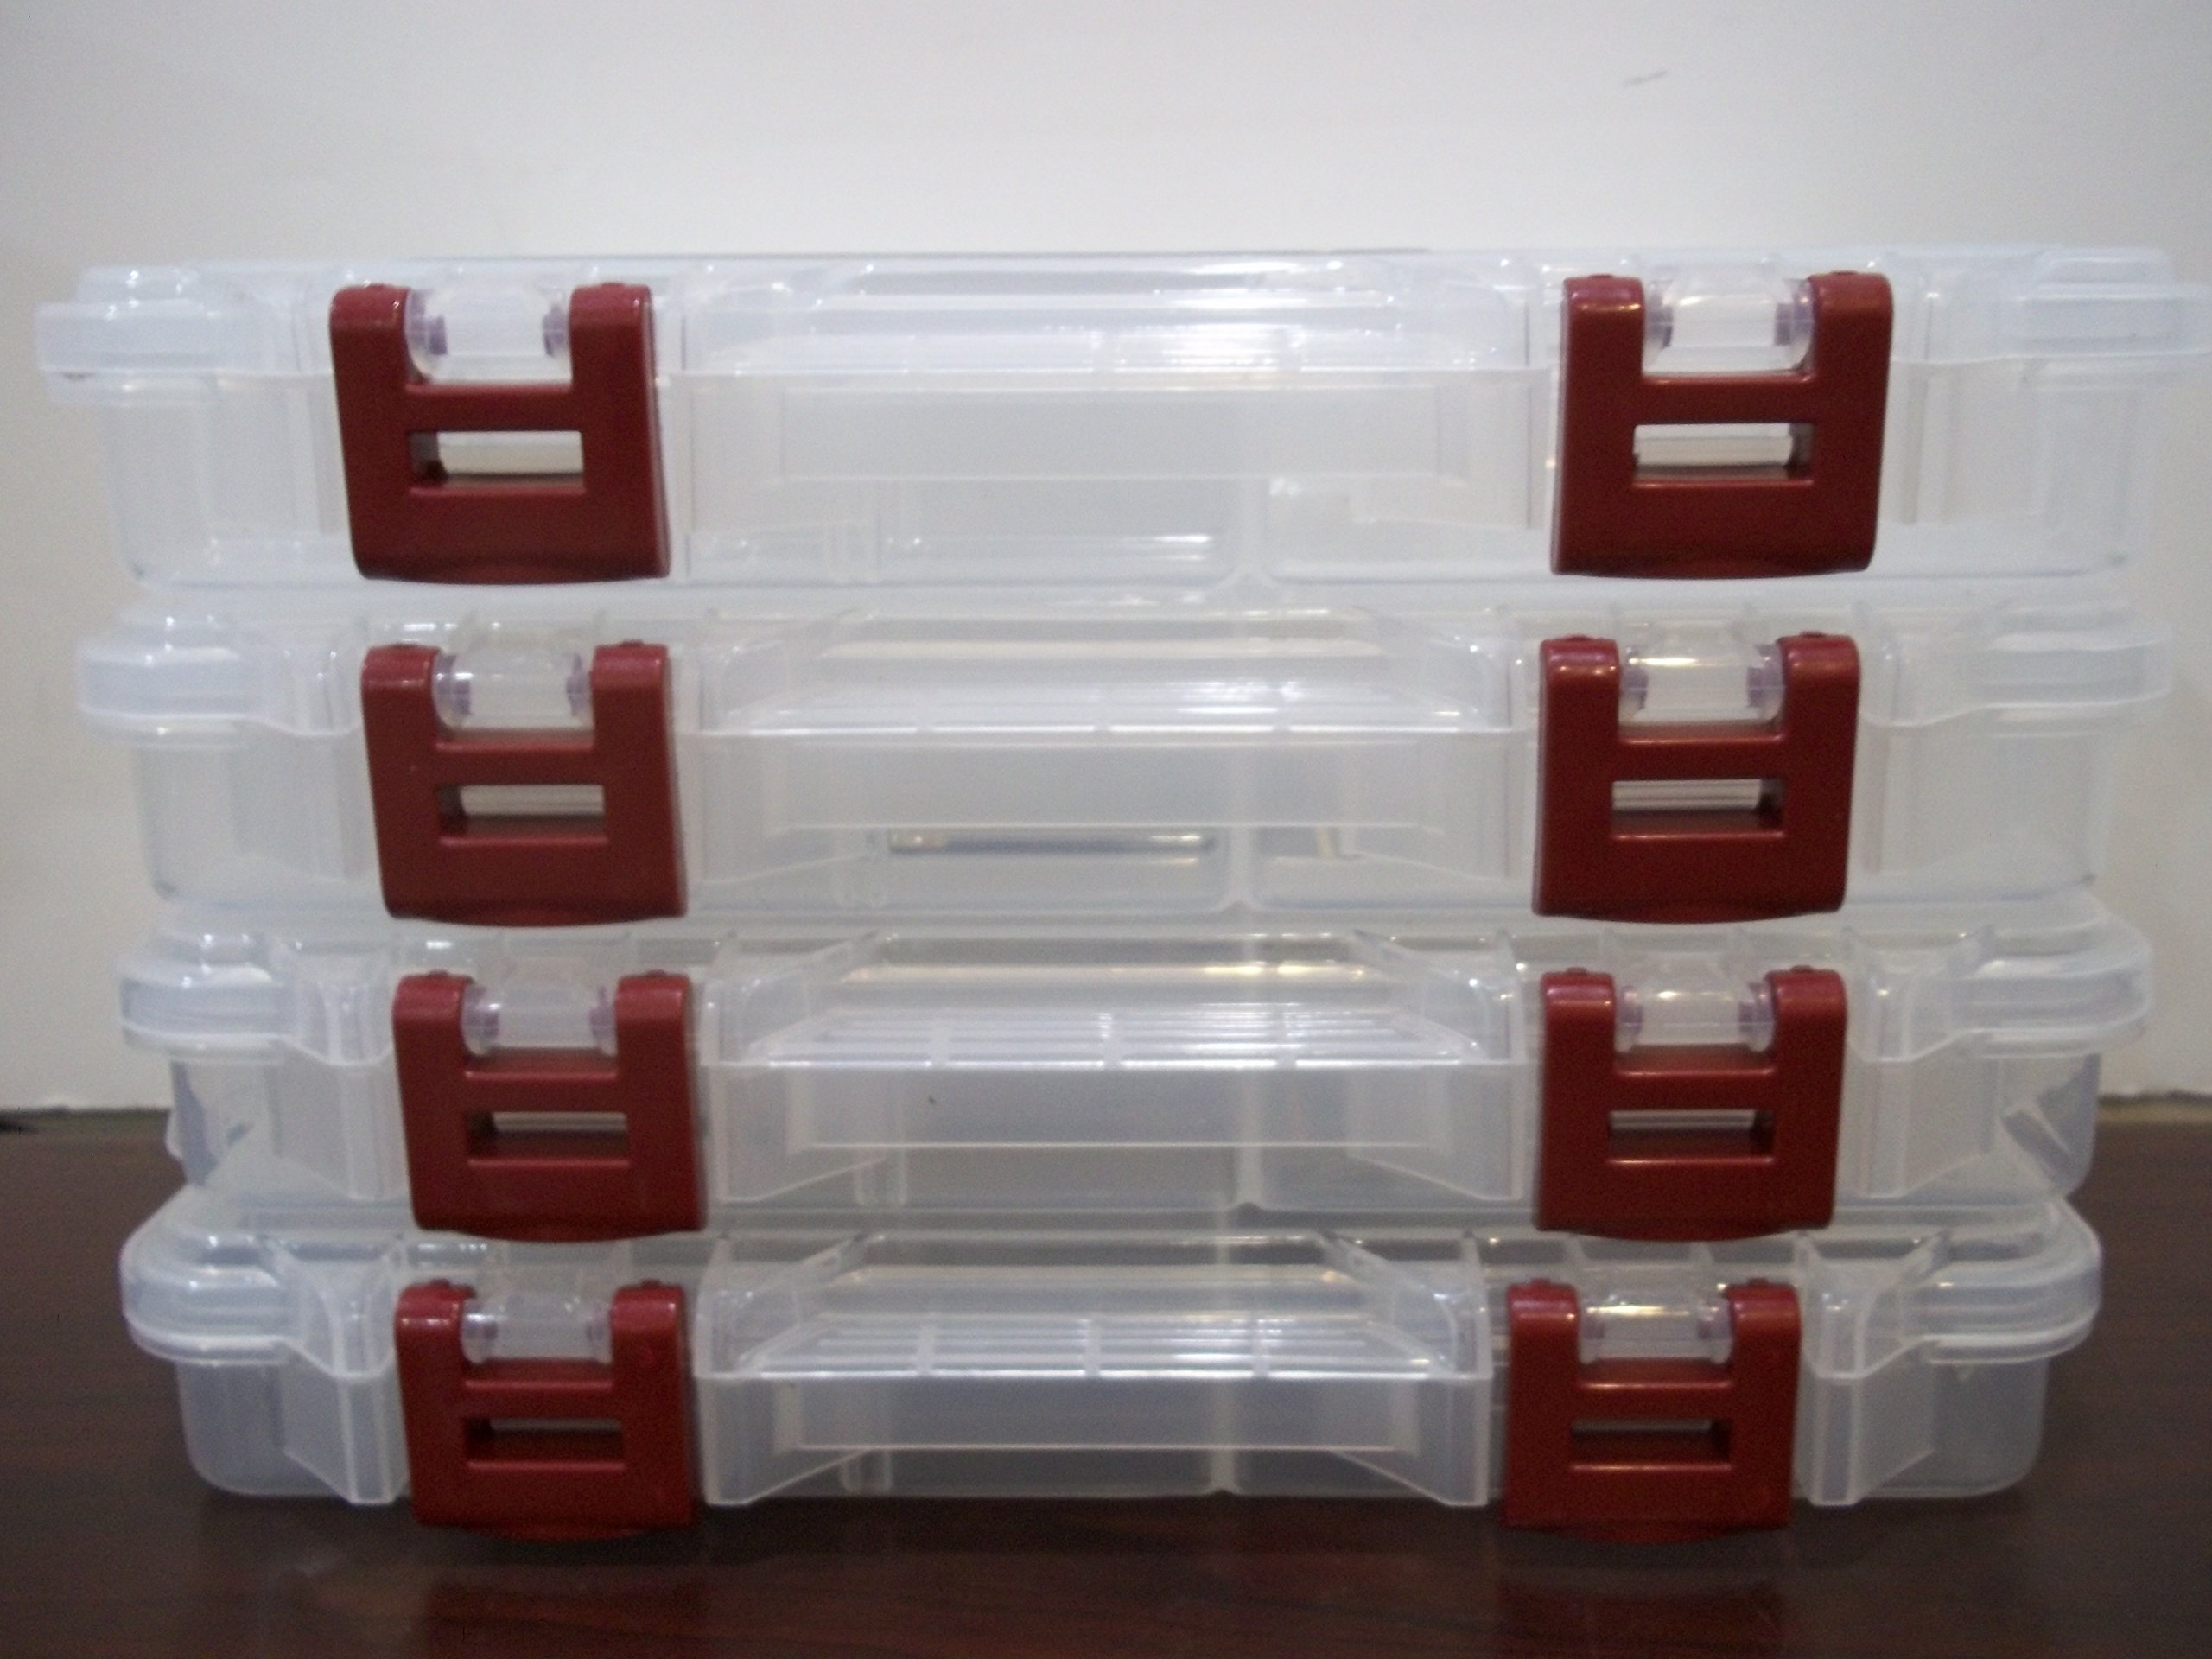 Plano Prolatch Stowaway Storage with Adjustable Dividers 3650 Series (Maroon New Latch) by Plano